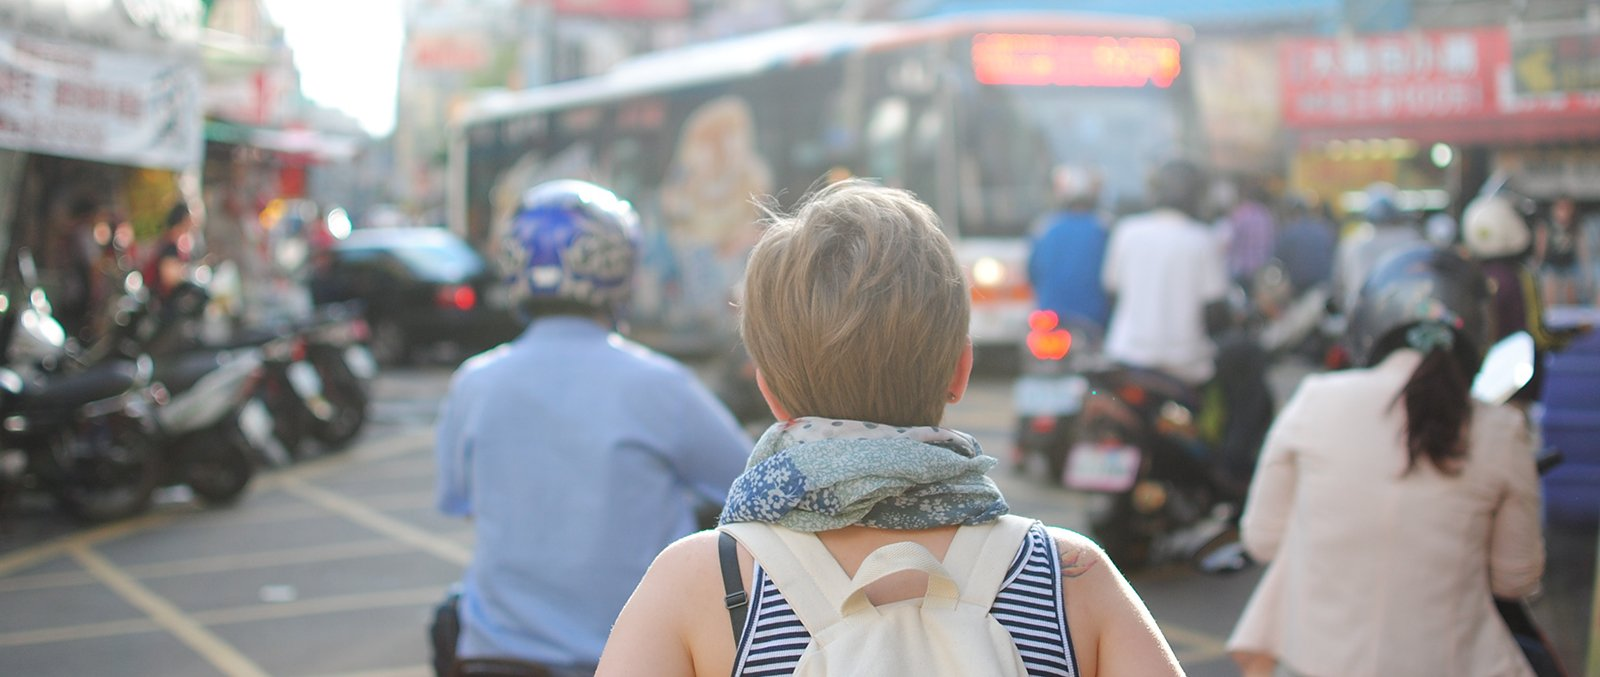 A Few Simple Steps to Protect Yourself During Your Trip.